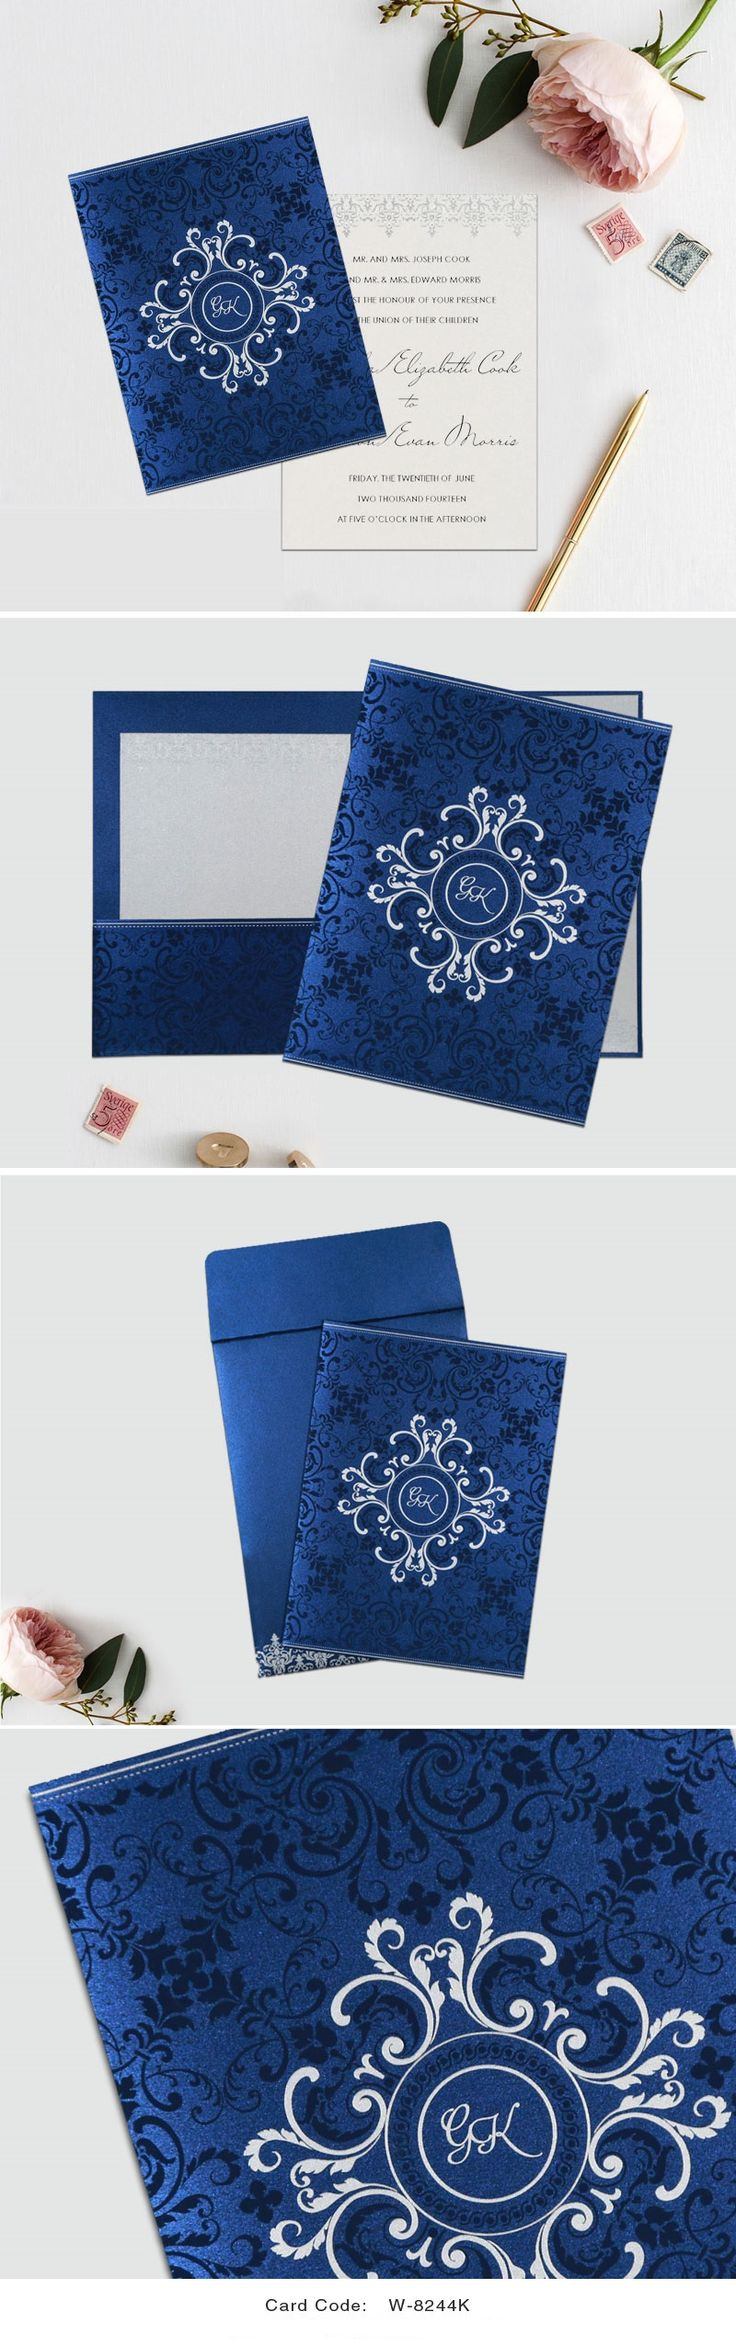 COBALT BLUE SHIMMERY SCREEN PRINTED WEDDING CARD